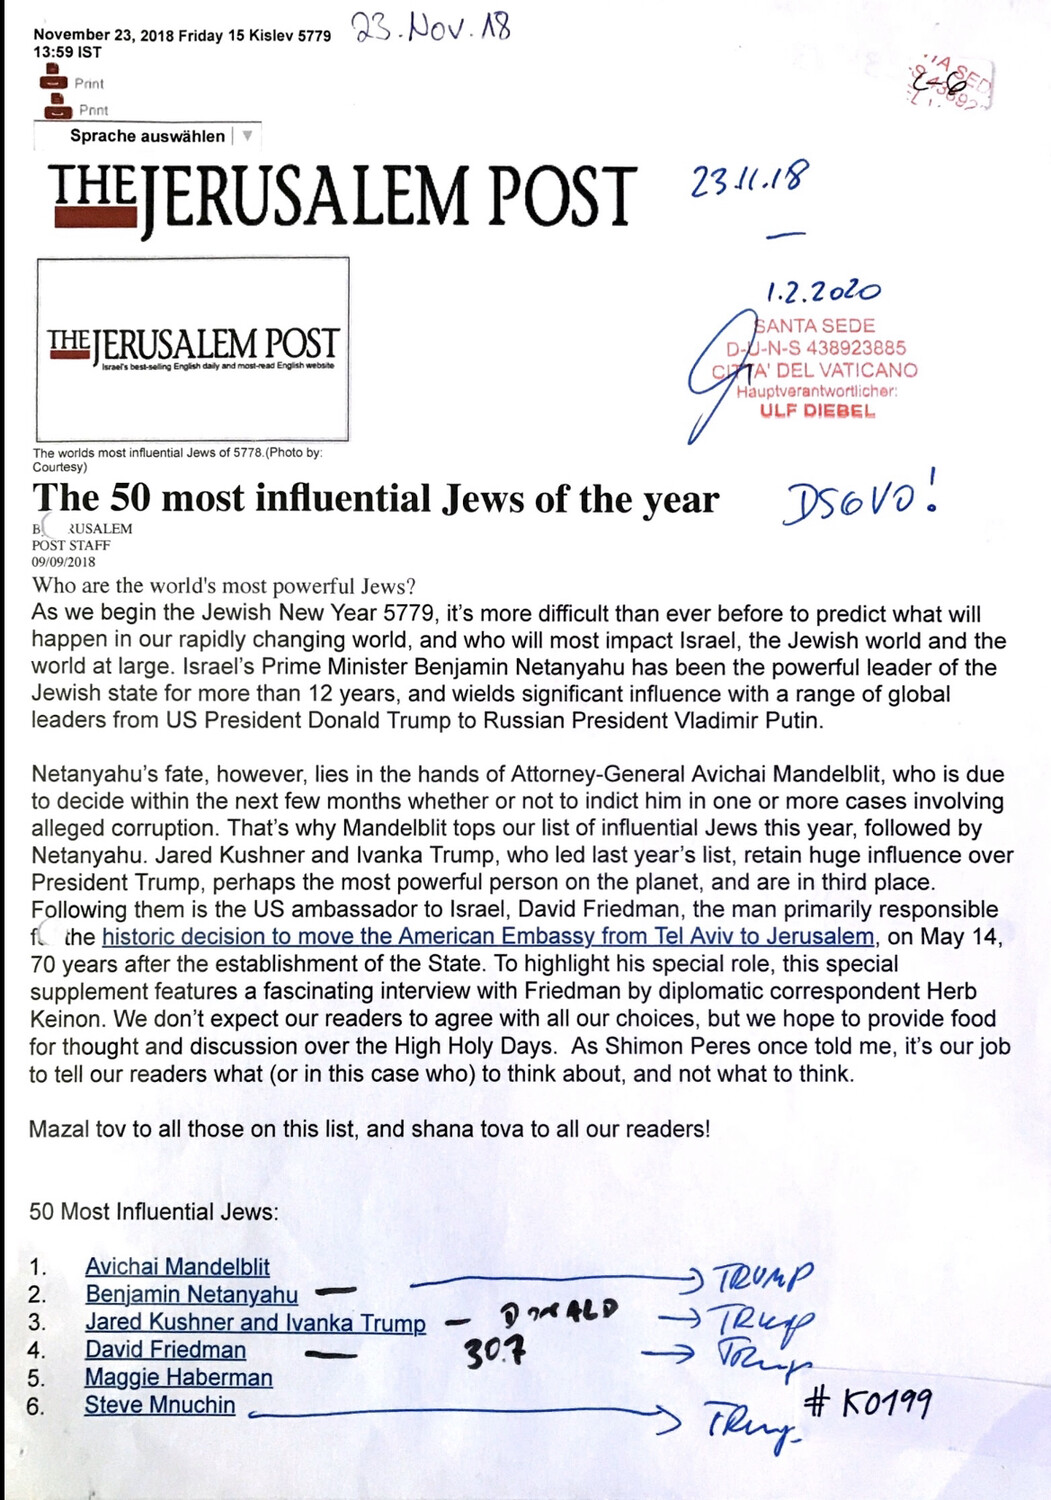 #K0199 l The Jerusalem Post - The 50 most influential Jews of the year